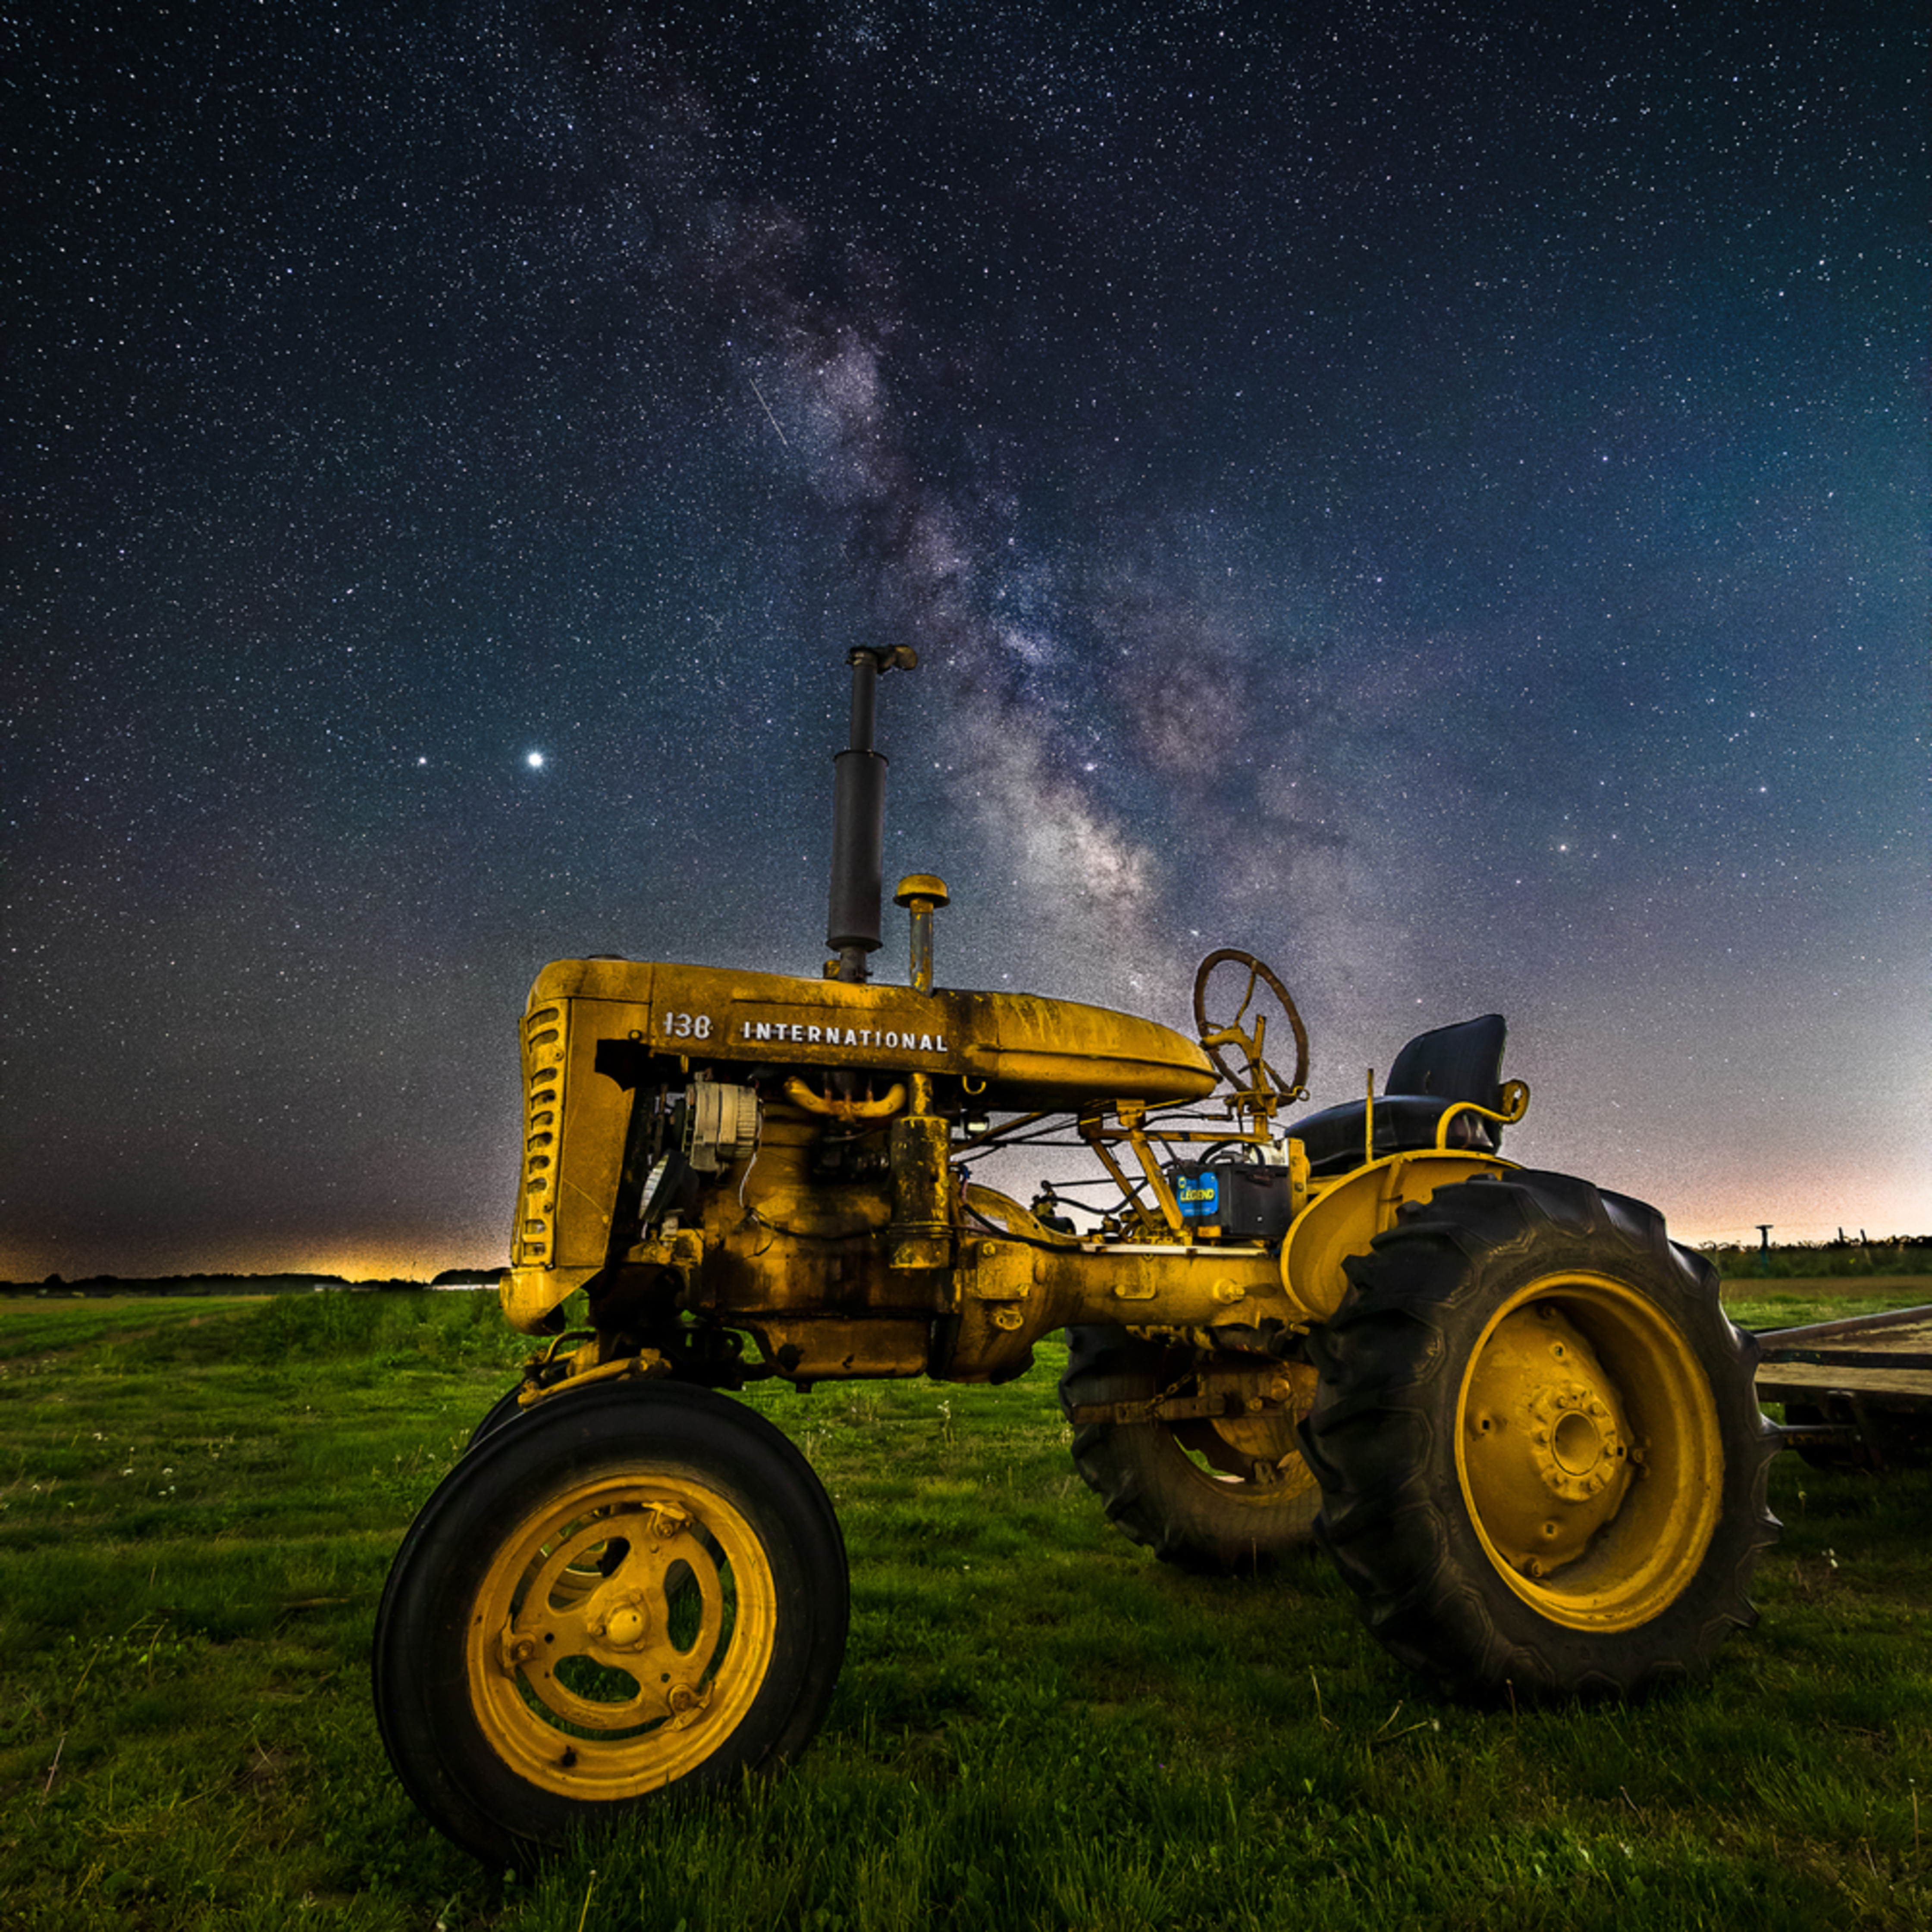 Yellow tractor milky way e4fev7